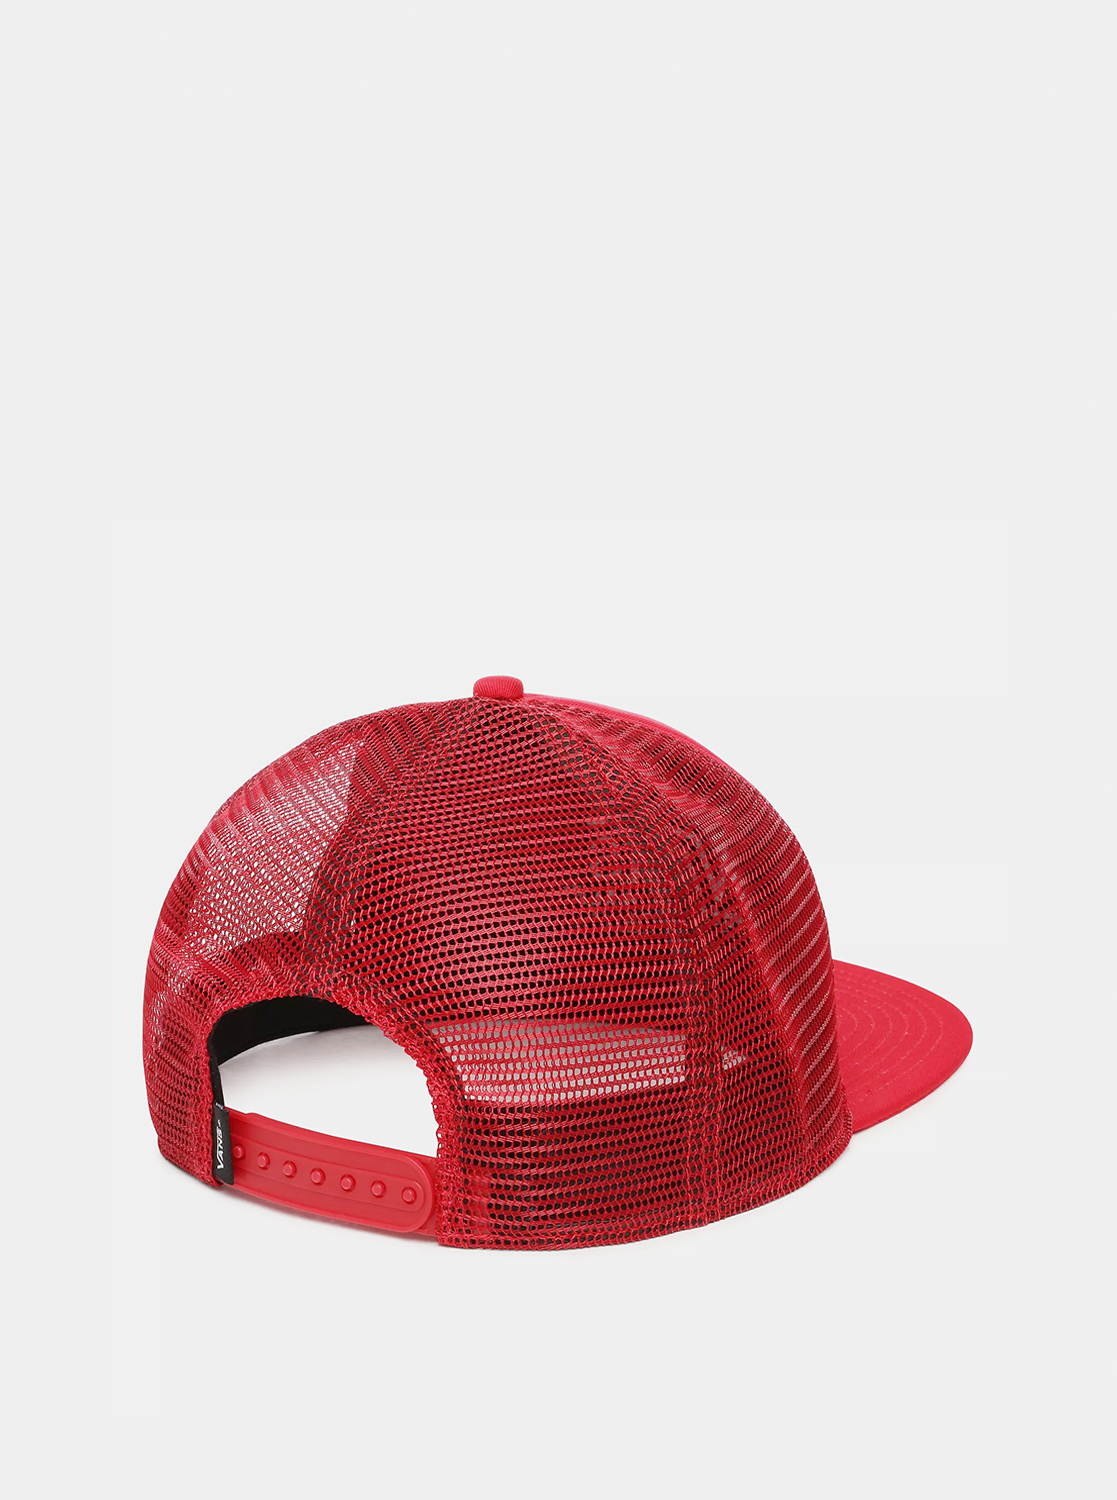 Vans red men´s baseball cap with logo